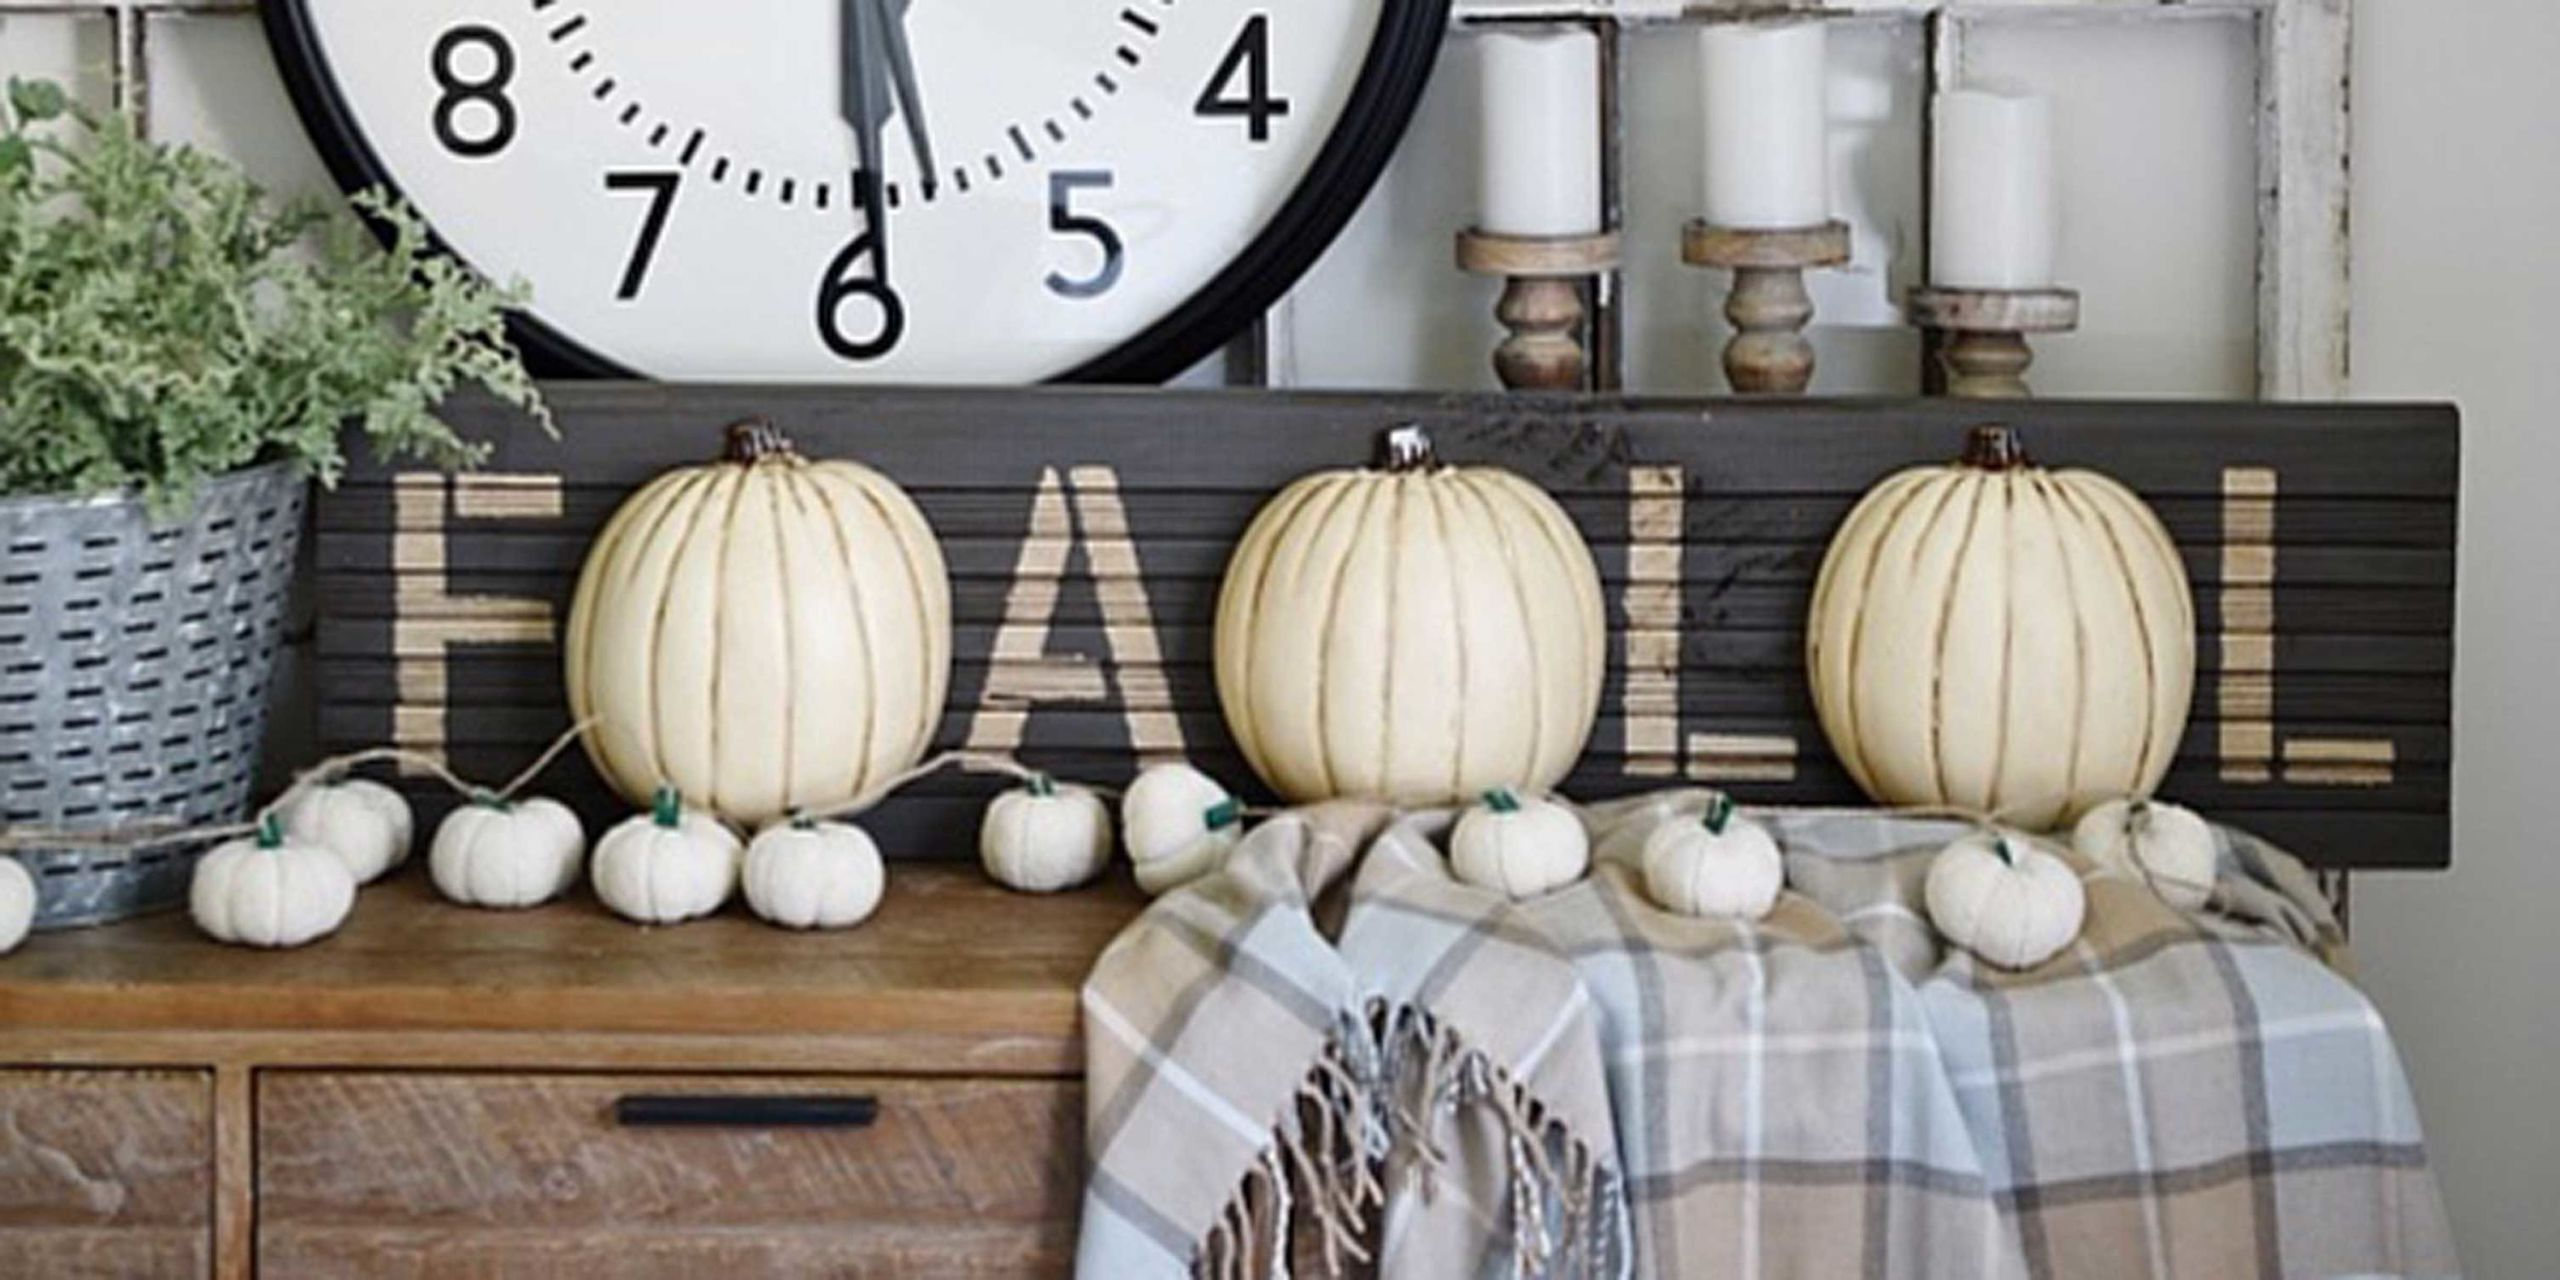 From Foyers To Bathrooms, Weu0027ve Got You Covered For Fall Home Decor. Plus,  Get More Great Fall Decorating Ideas!